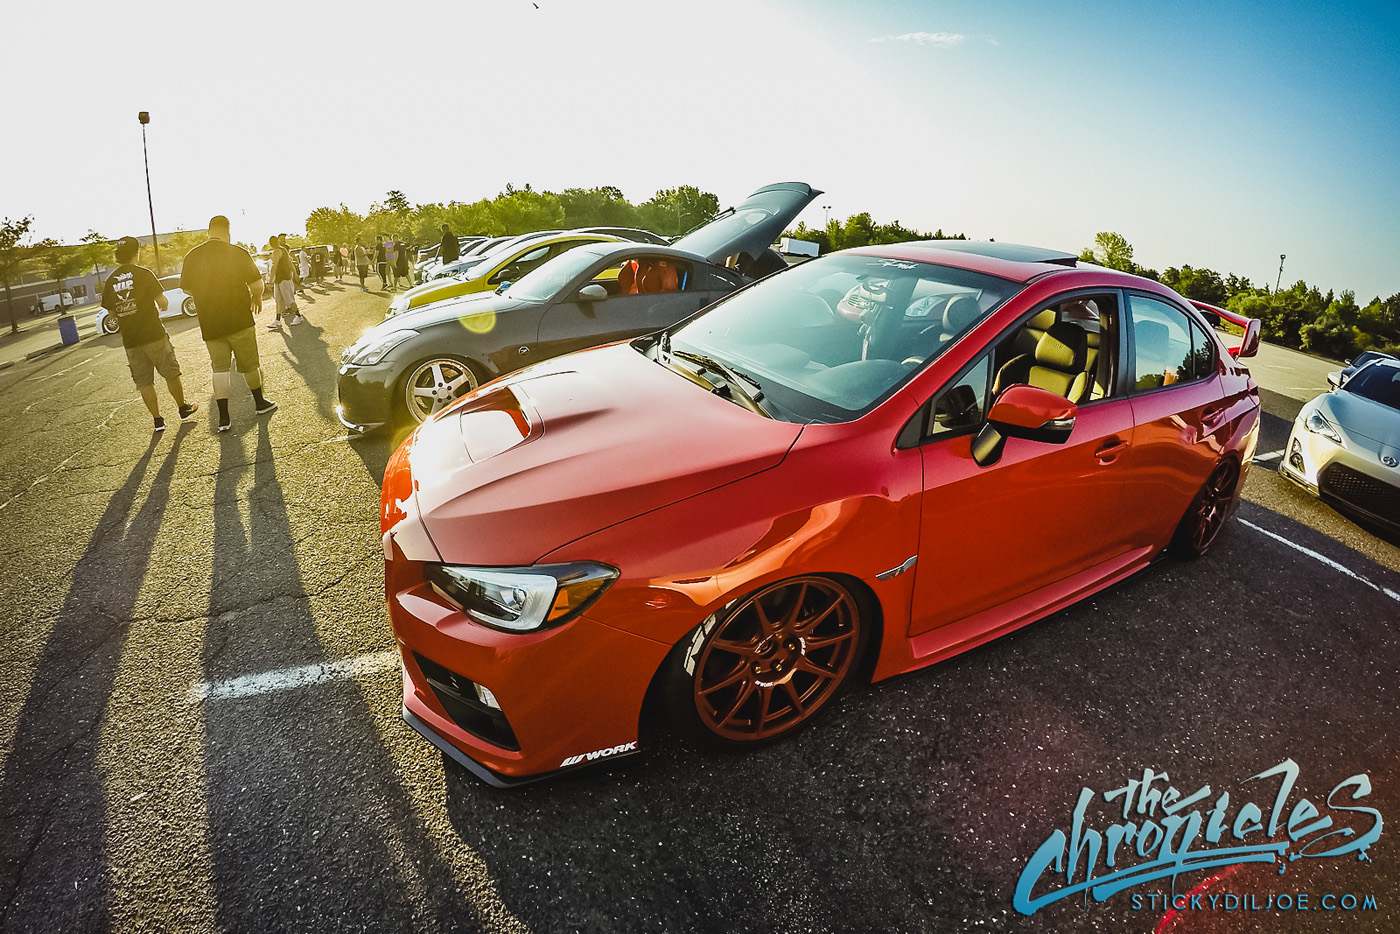 The Chronicles Vlog #13 (Part 3): The Conclusion of Wekfest East…